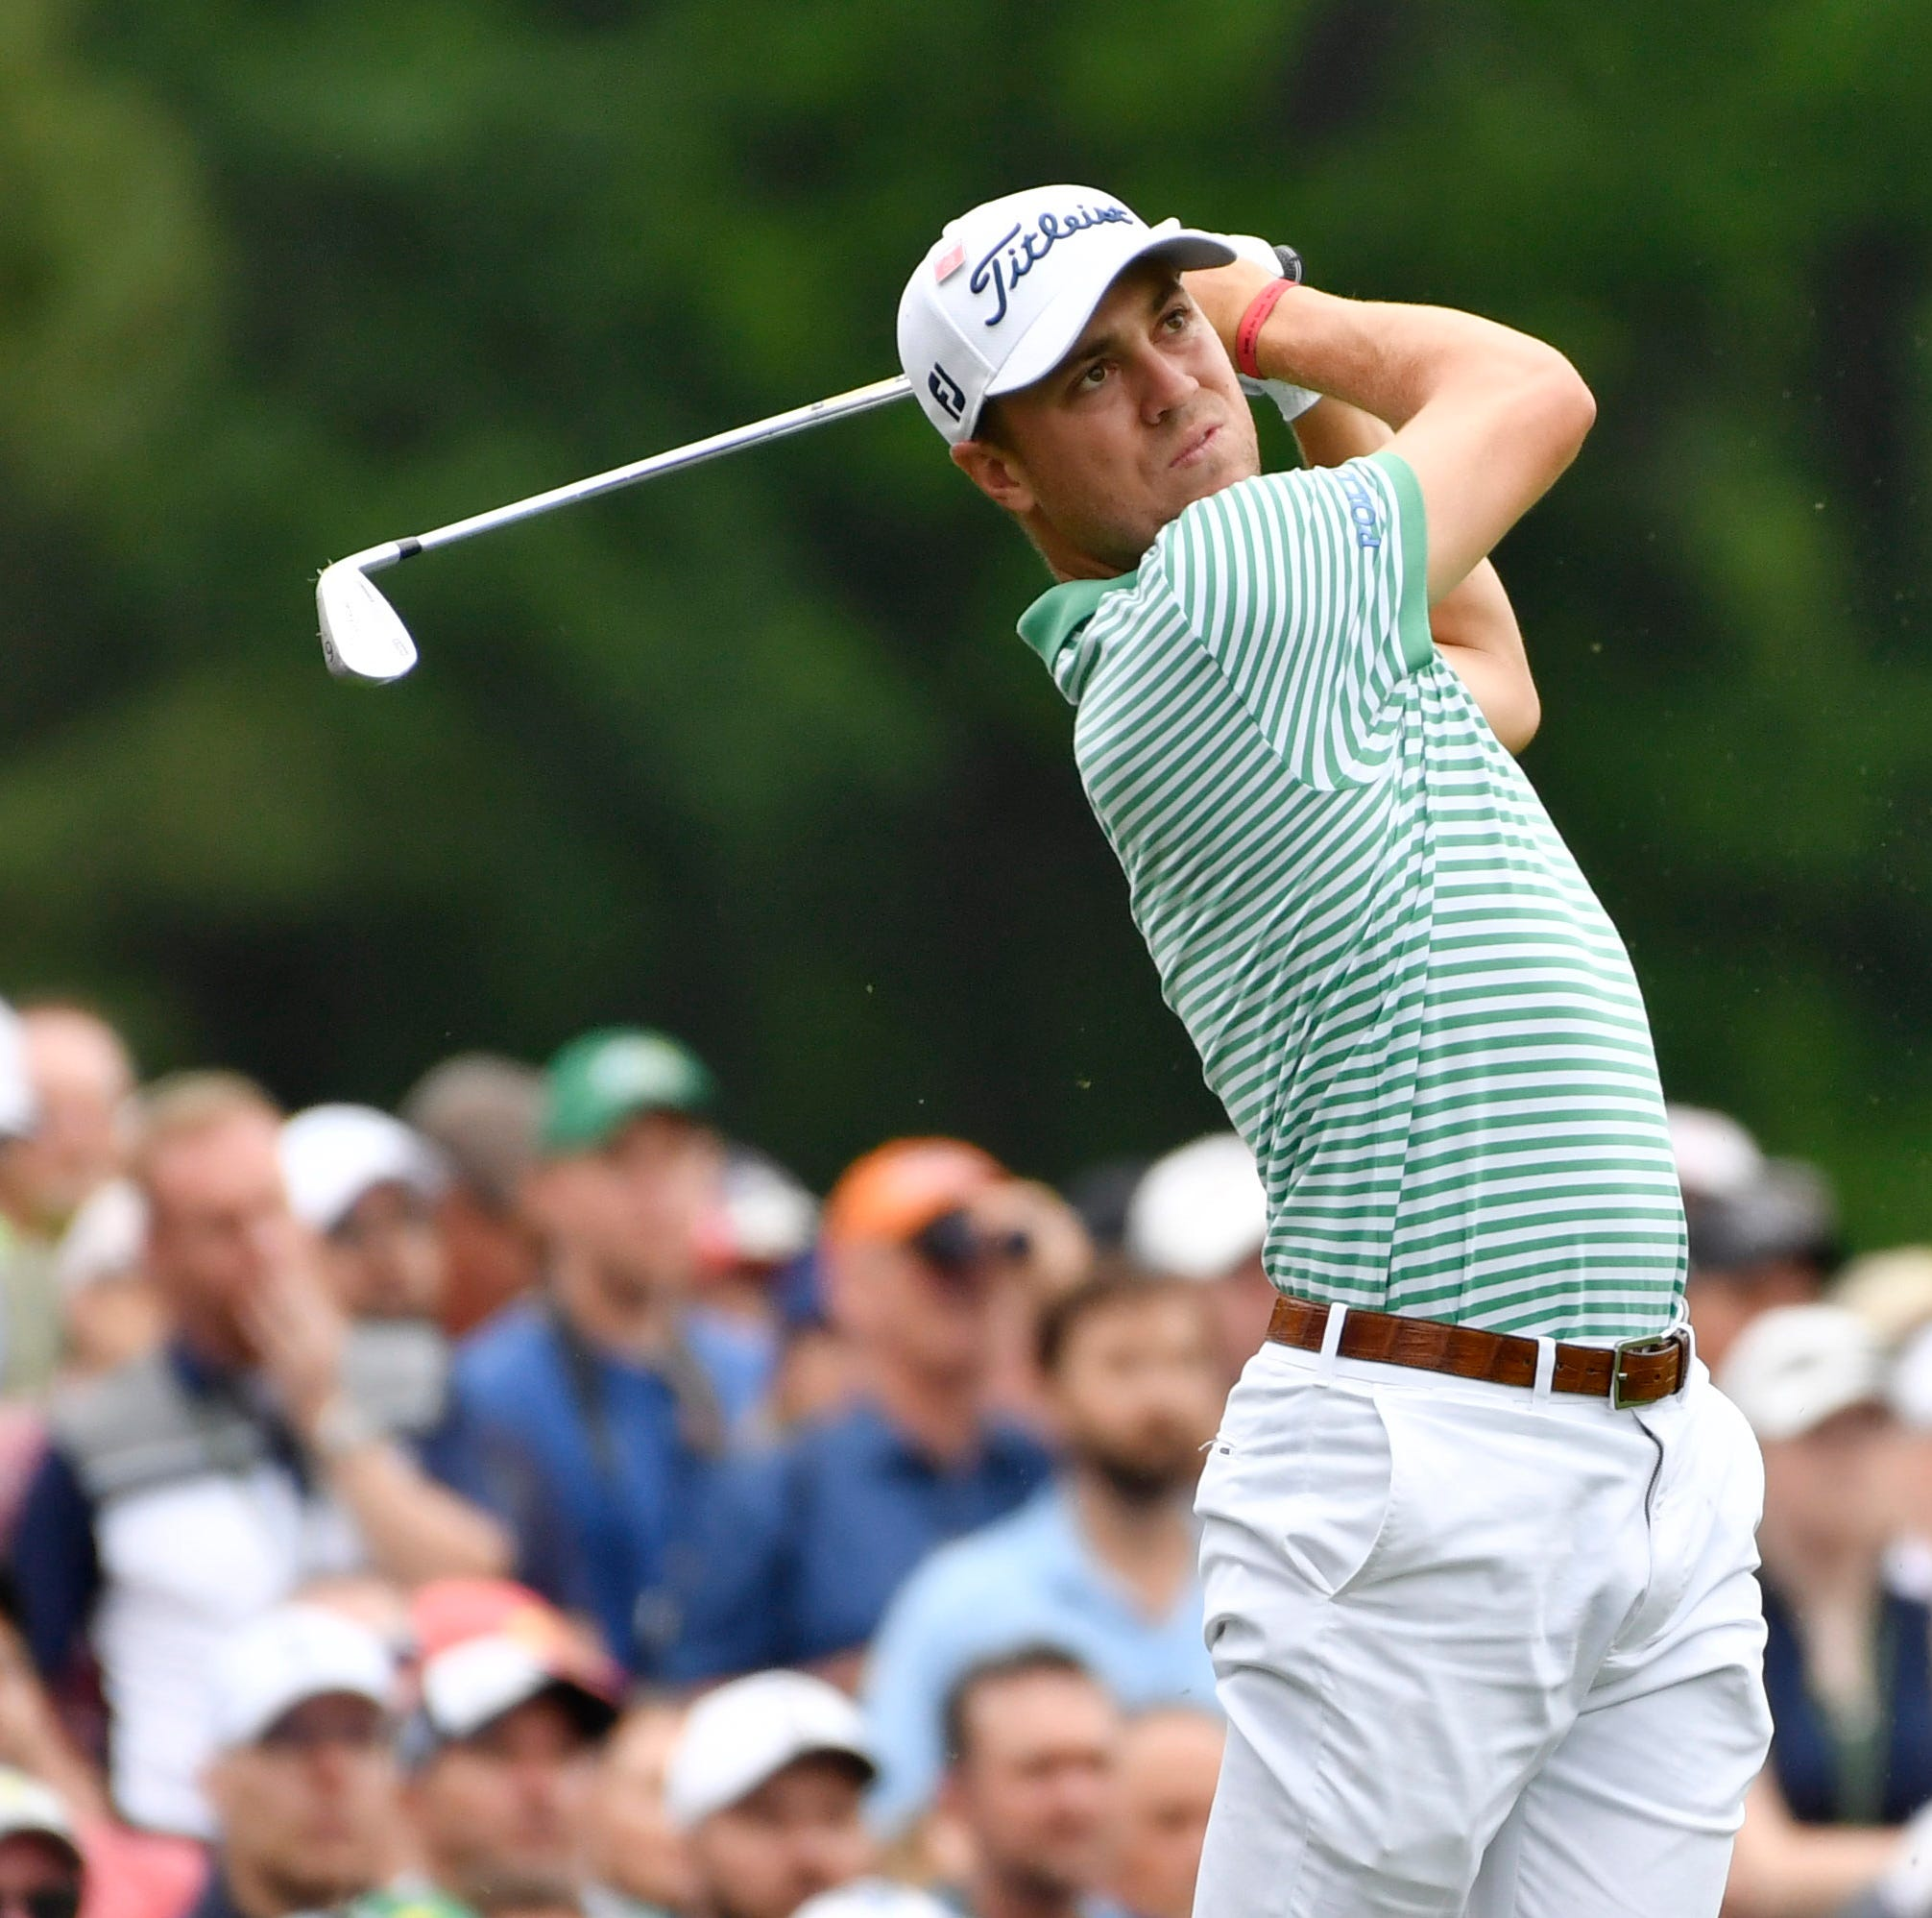 St. Xavier grad Justin Thomas makes a memorable hole-in-one at Masters